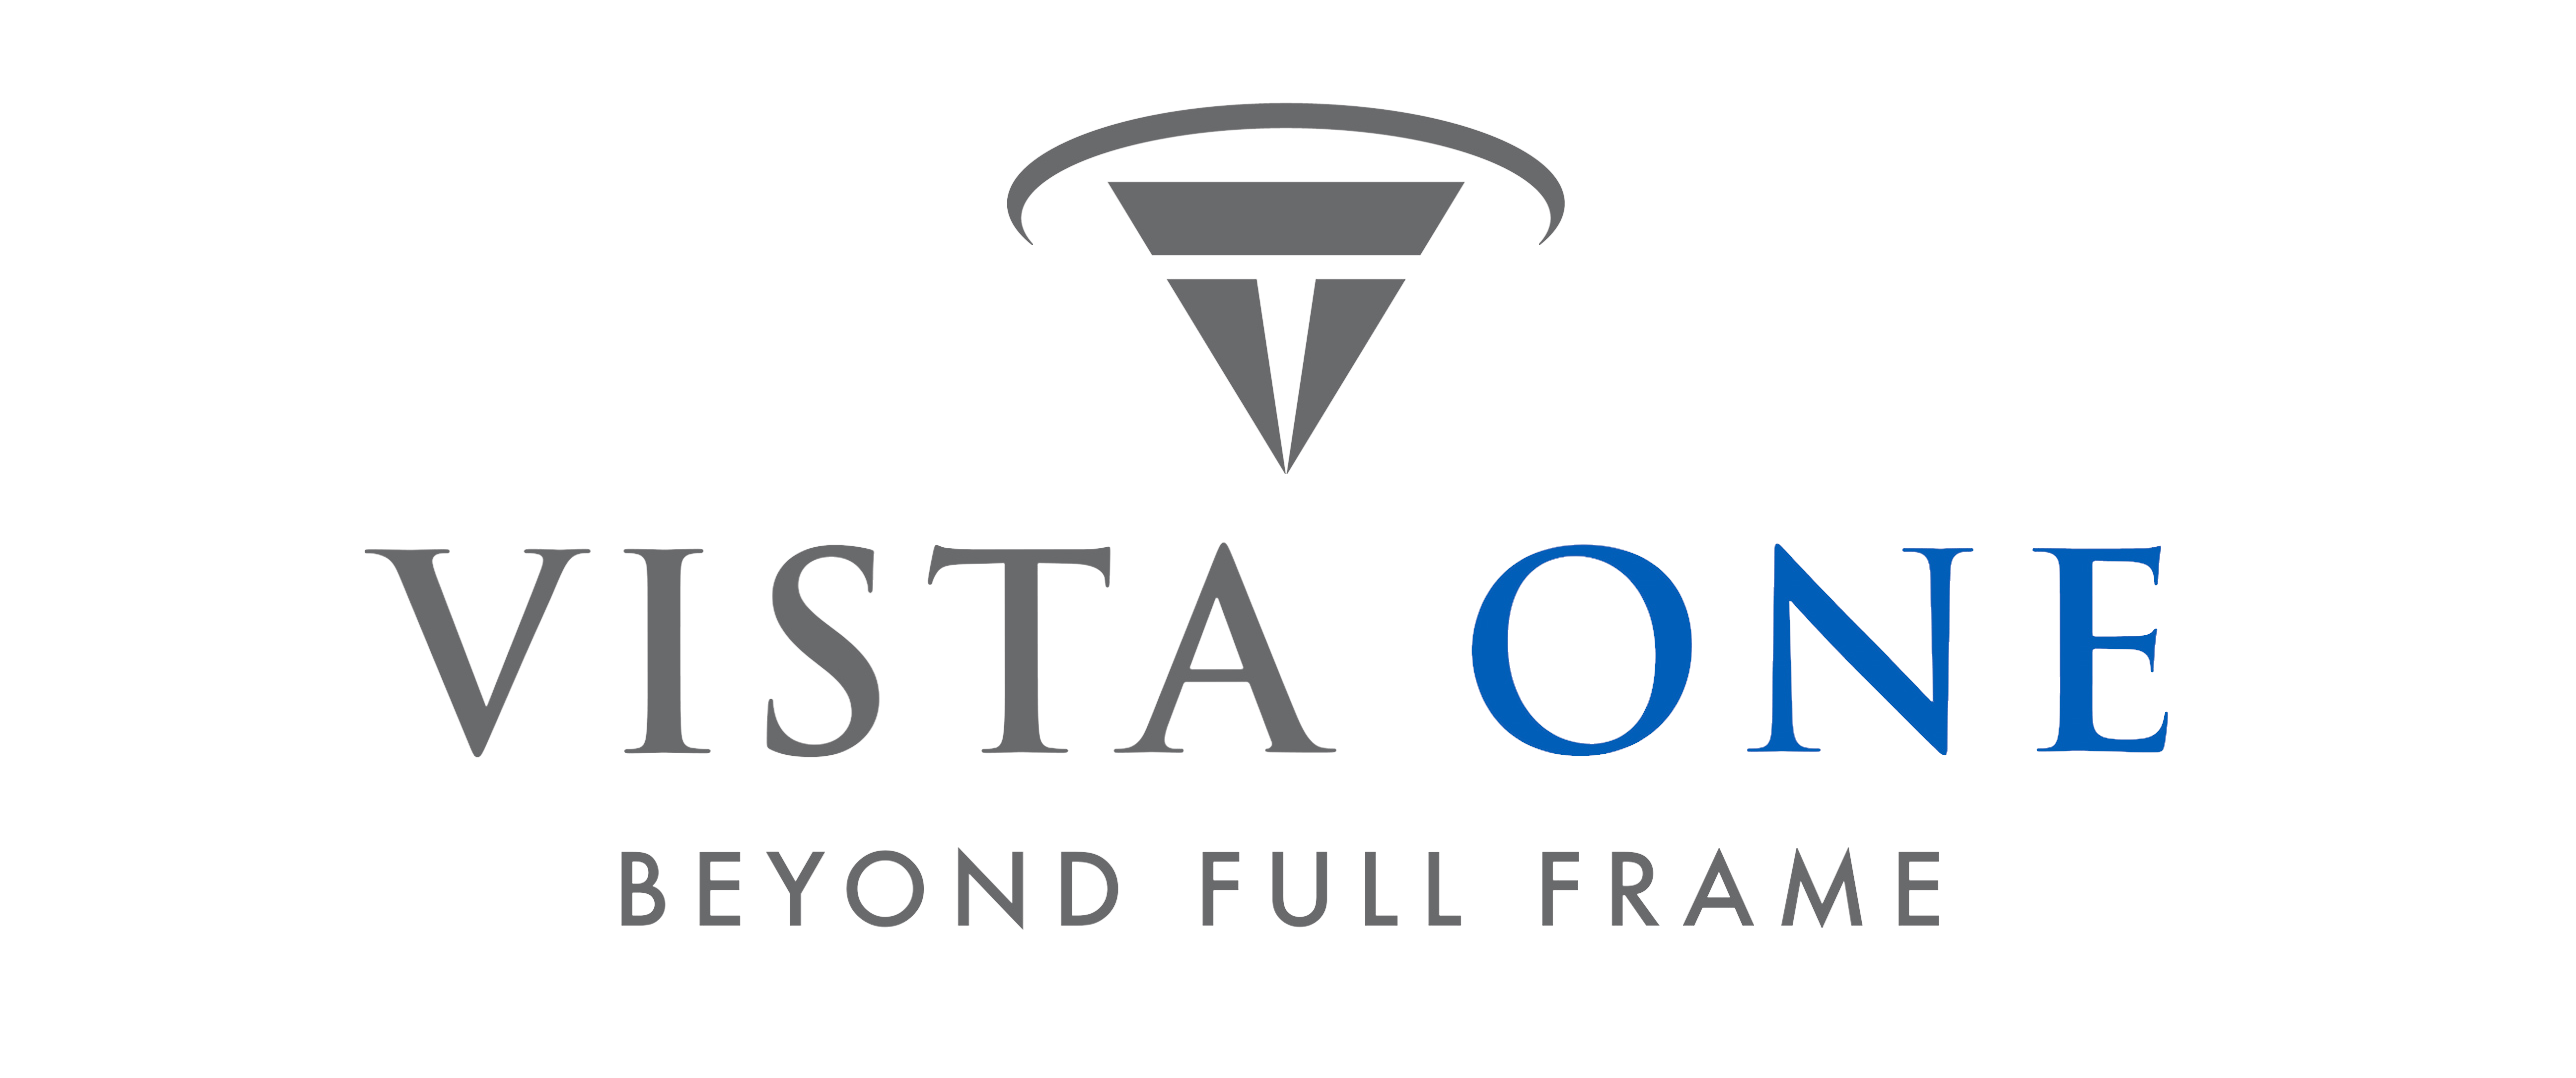 vista-one-logo-no-background.png